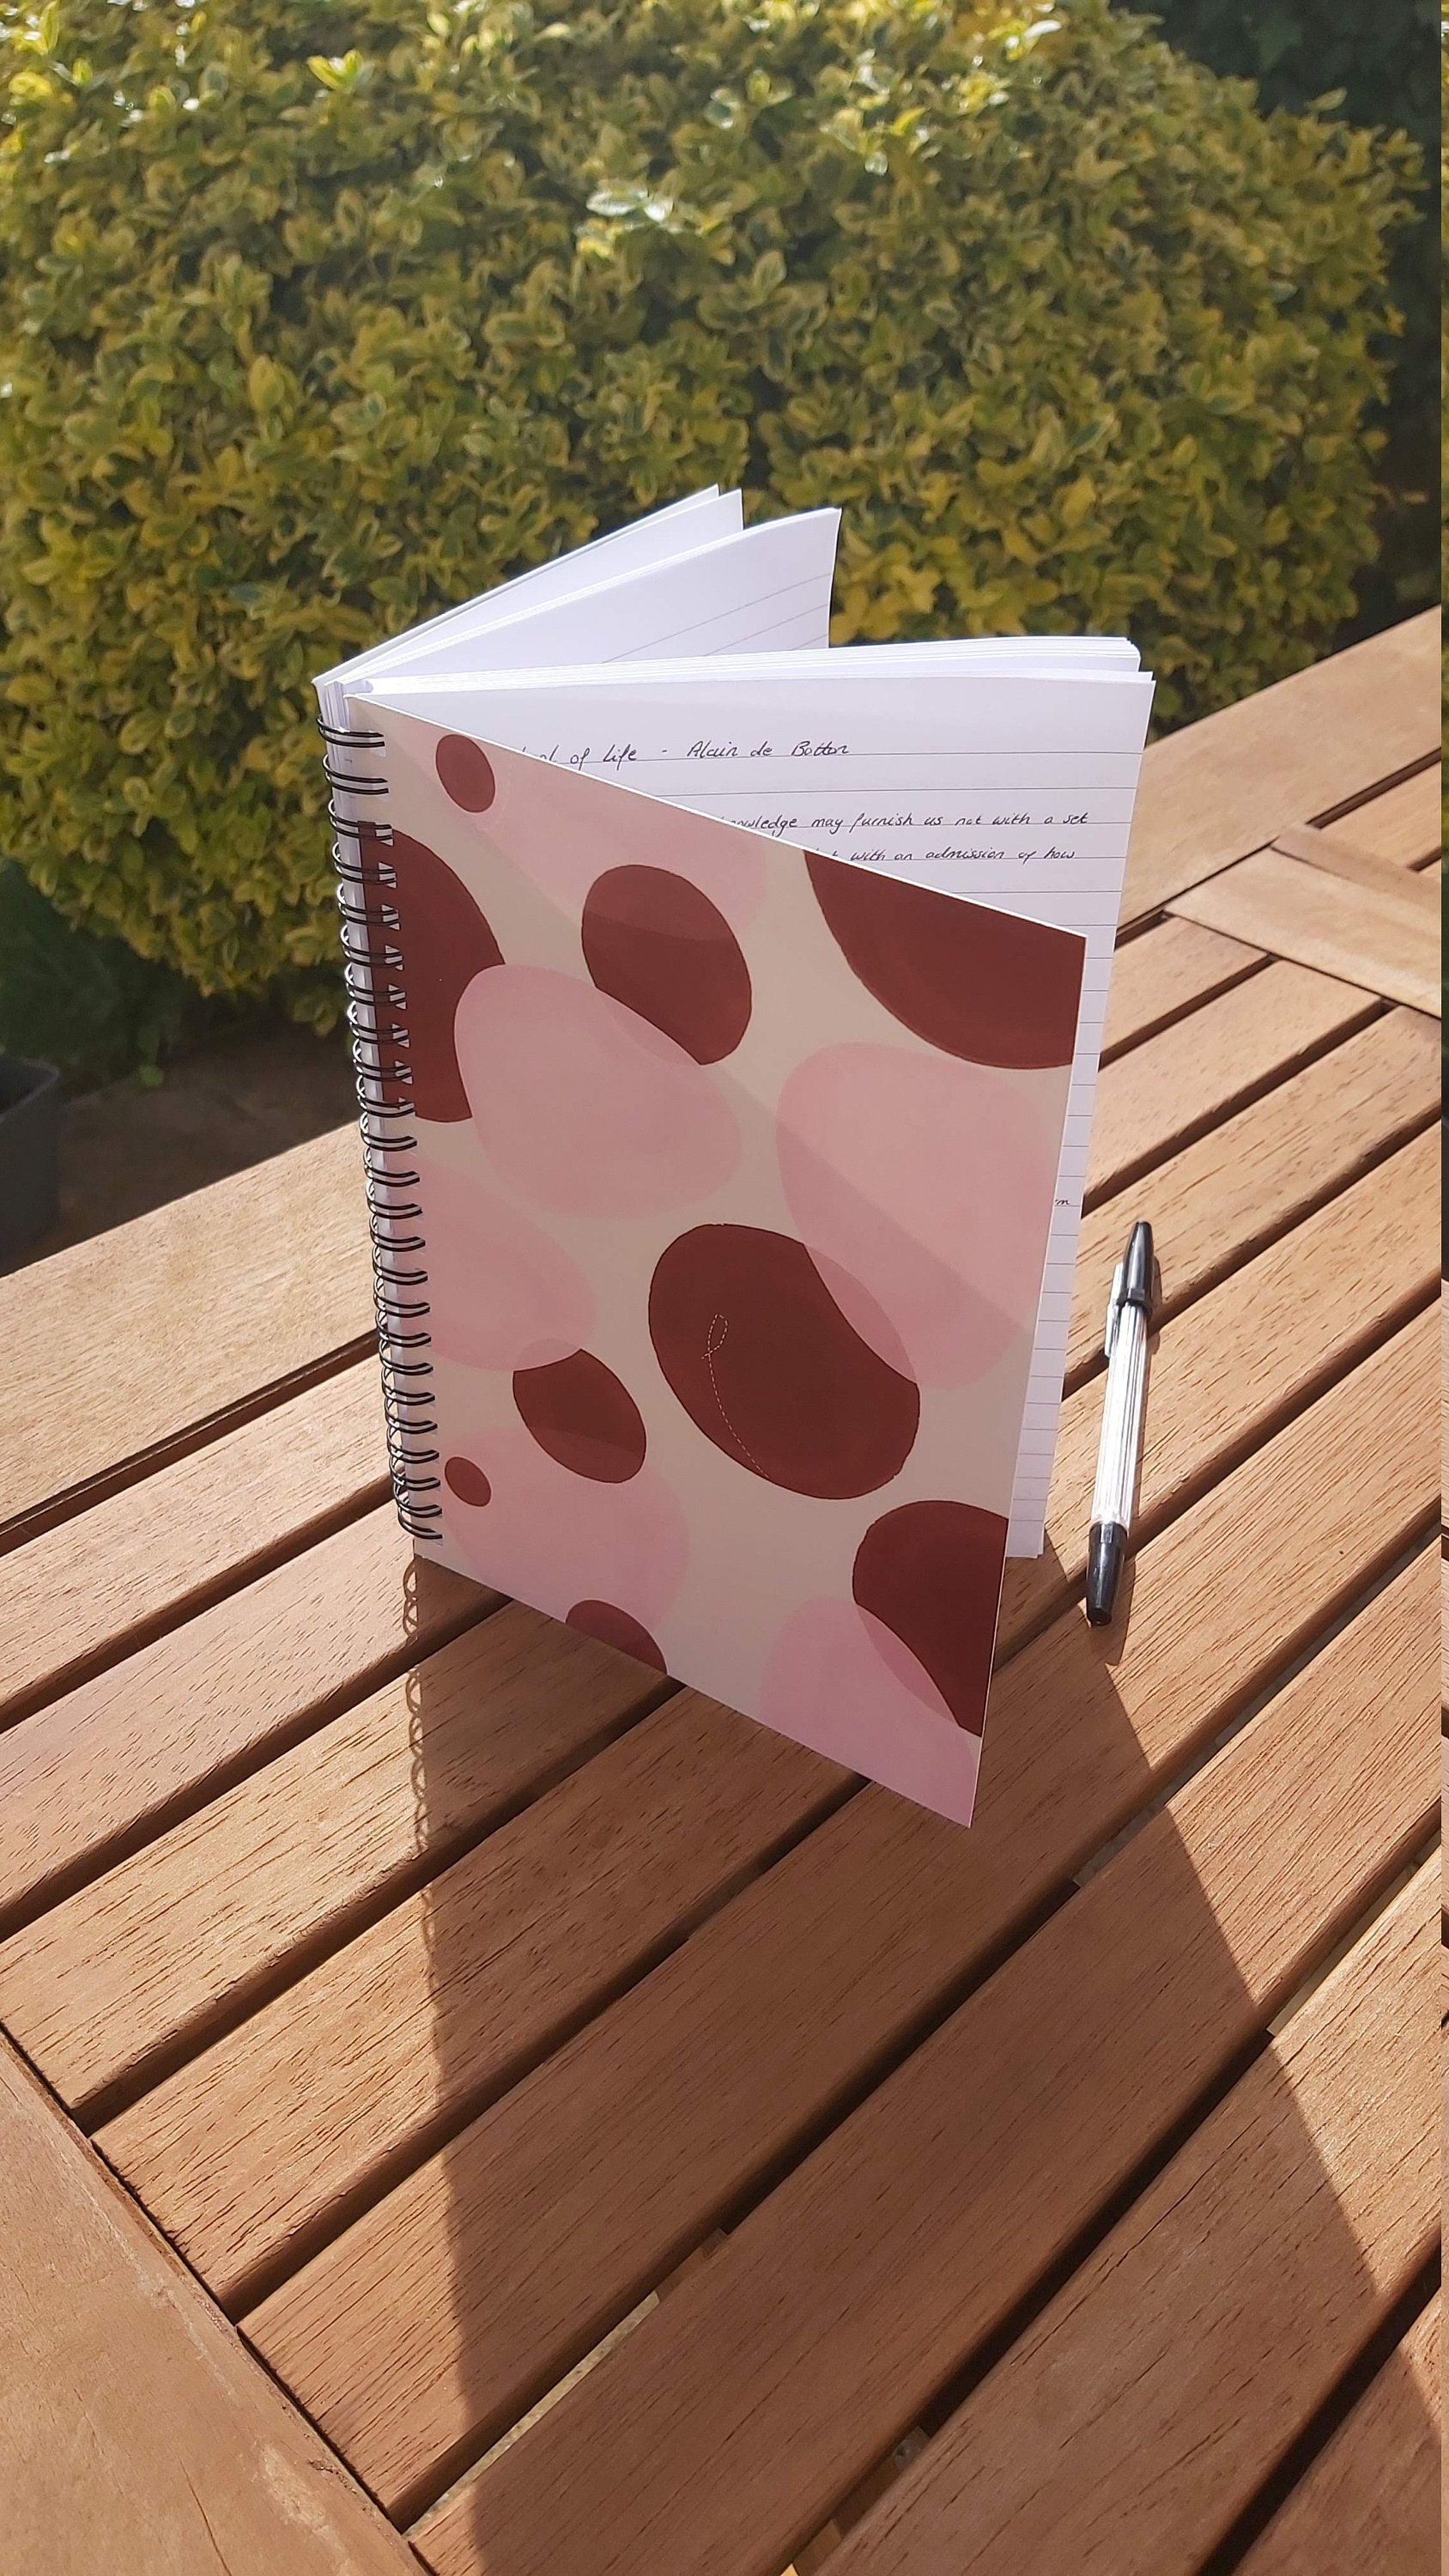 A photograph of a standing spiral-bound notebook, placed on a wooden surface with greenery behind. The notebook has a pink and red boho abstract design on the front cover